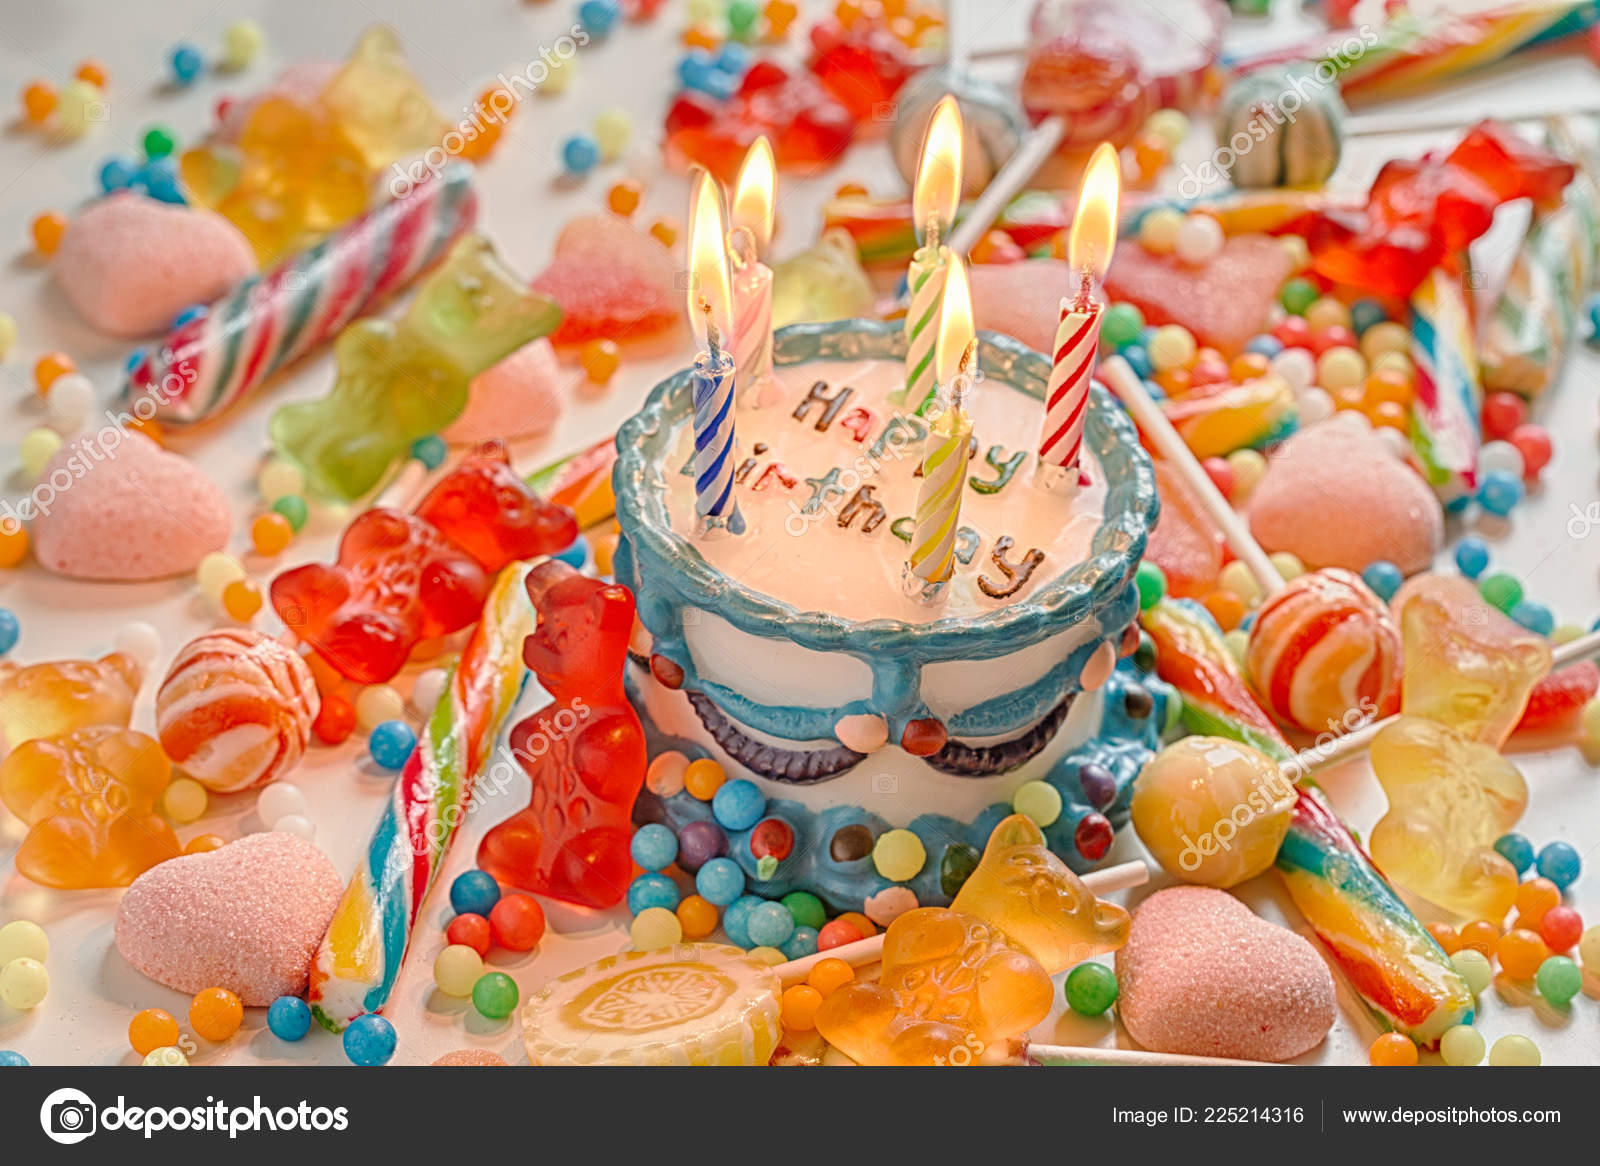 Awe Inspiring Happy Birthday Cake Candles Stock Photo C Aguaviva 225214316 Funny Birthday Cards Online Alyptdamsfinfo